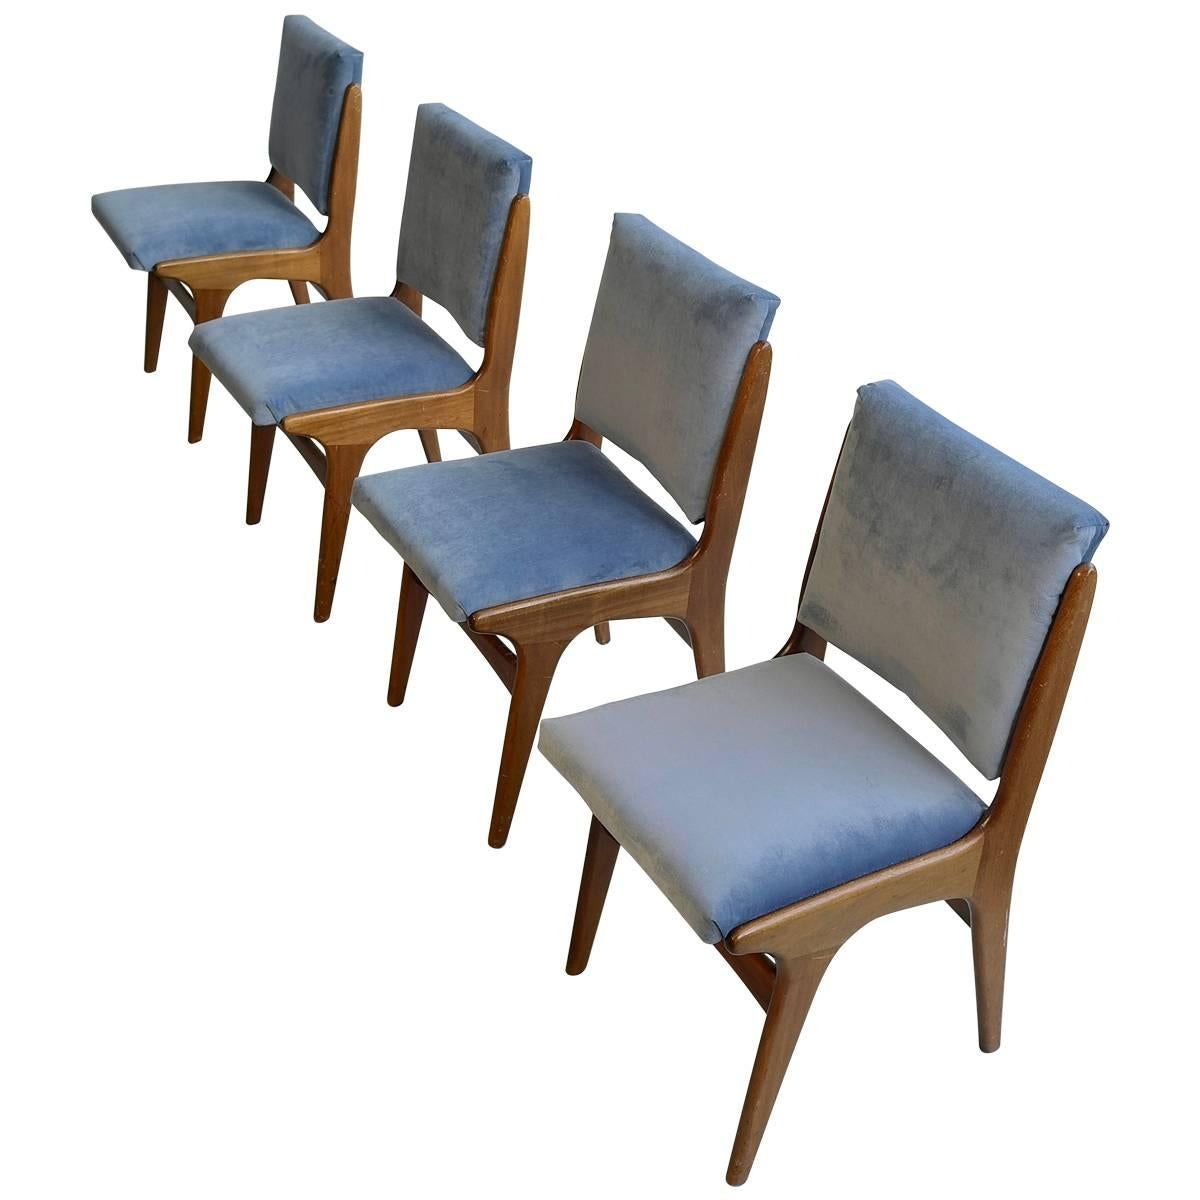 Four Dining Chairs in Ice Blue Velvet, in Style of Carlo di Carli, Italy, 1950s